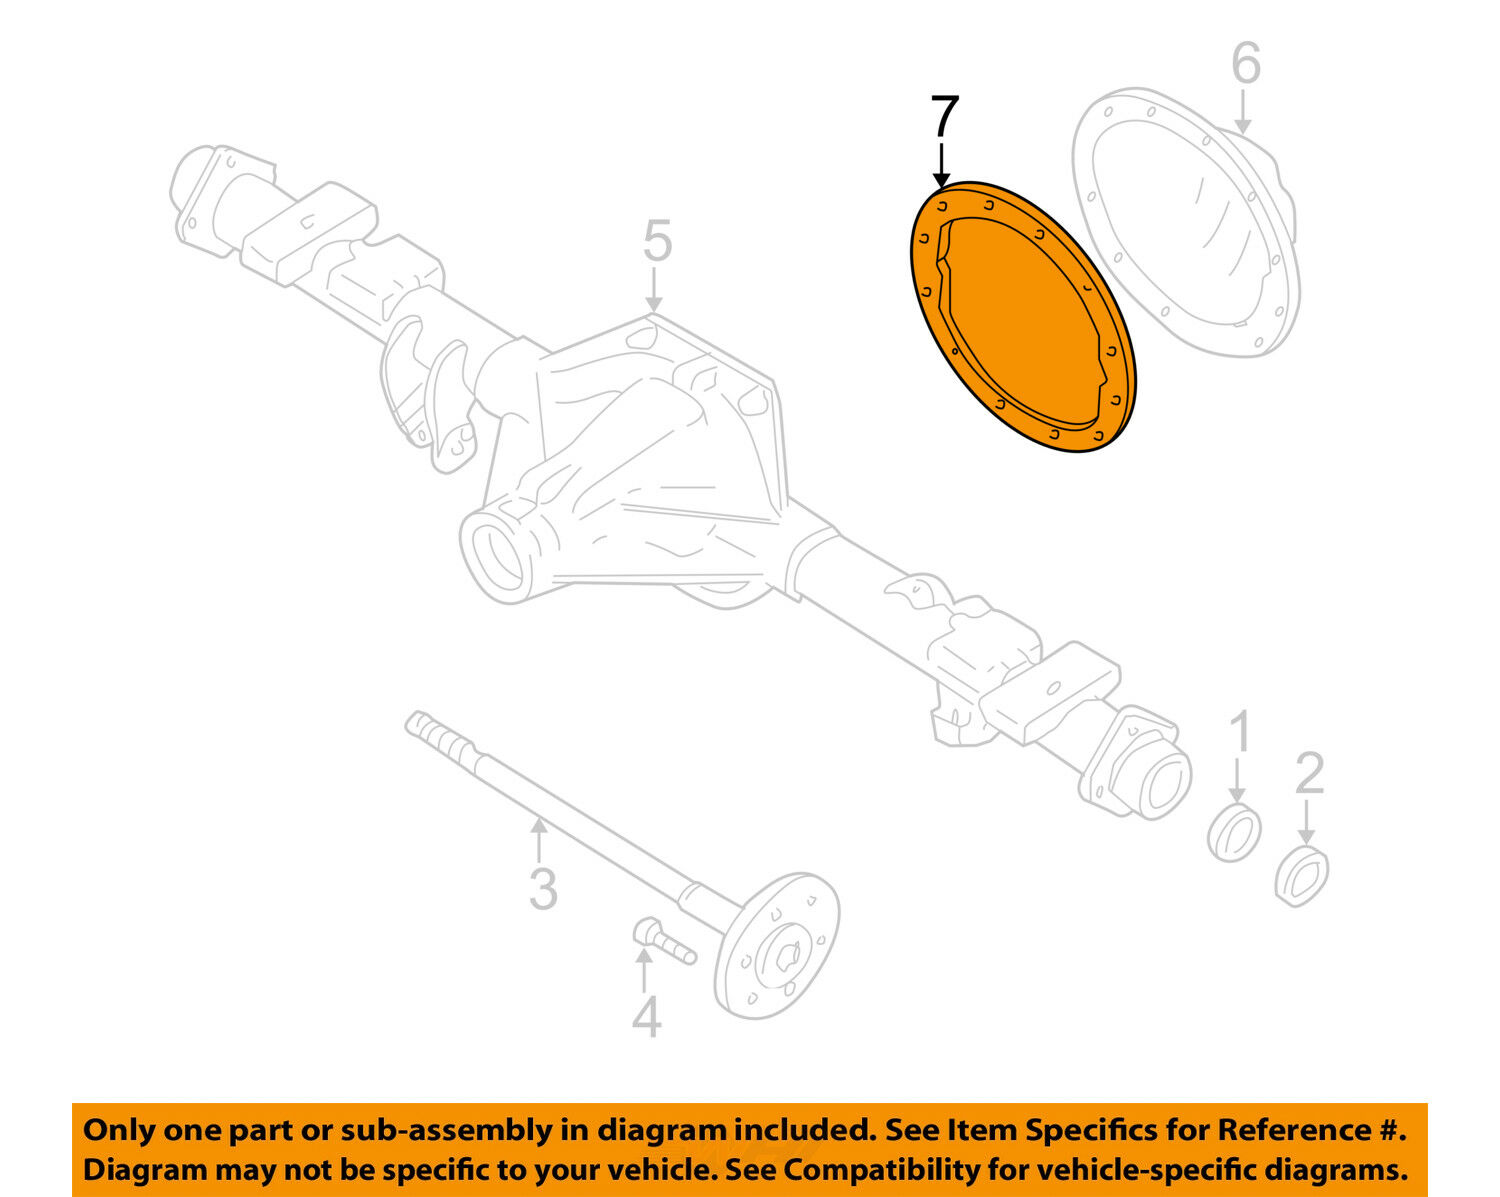 Gm Oem Rear Axle Differential Pumpkin Cover Gasket 15807693 1663 Diagram Of A 1 2only 5 Available